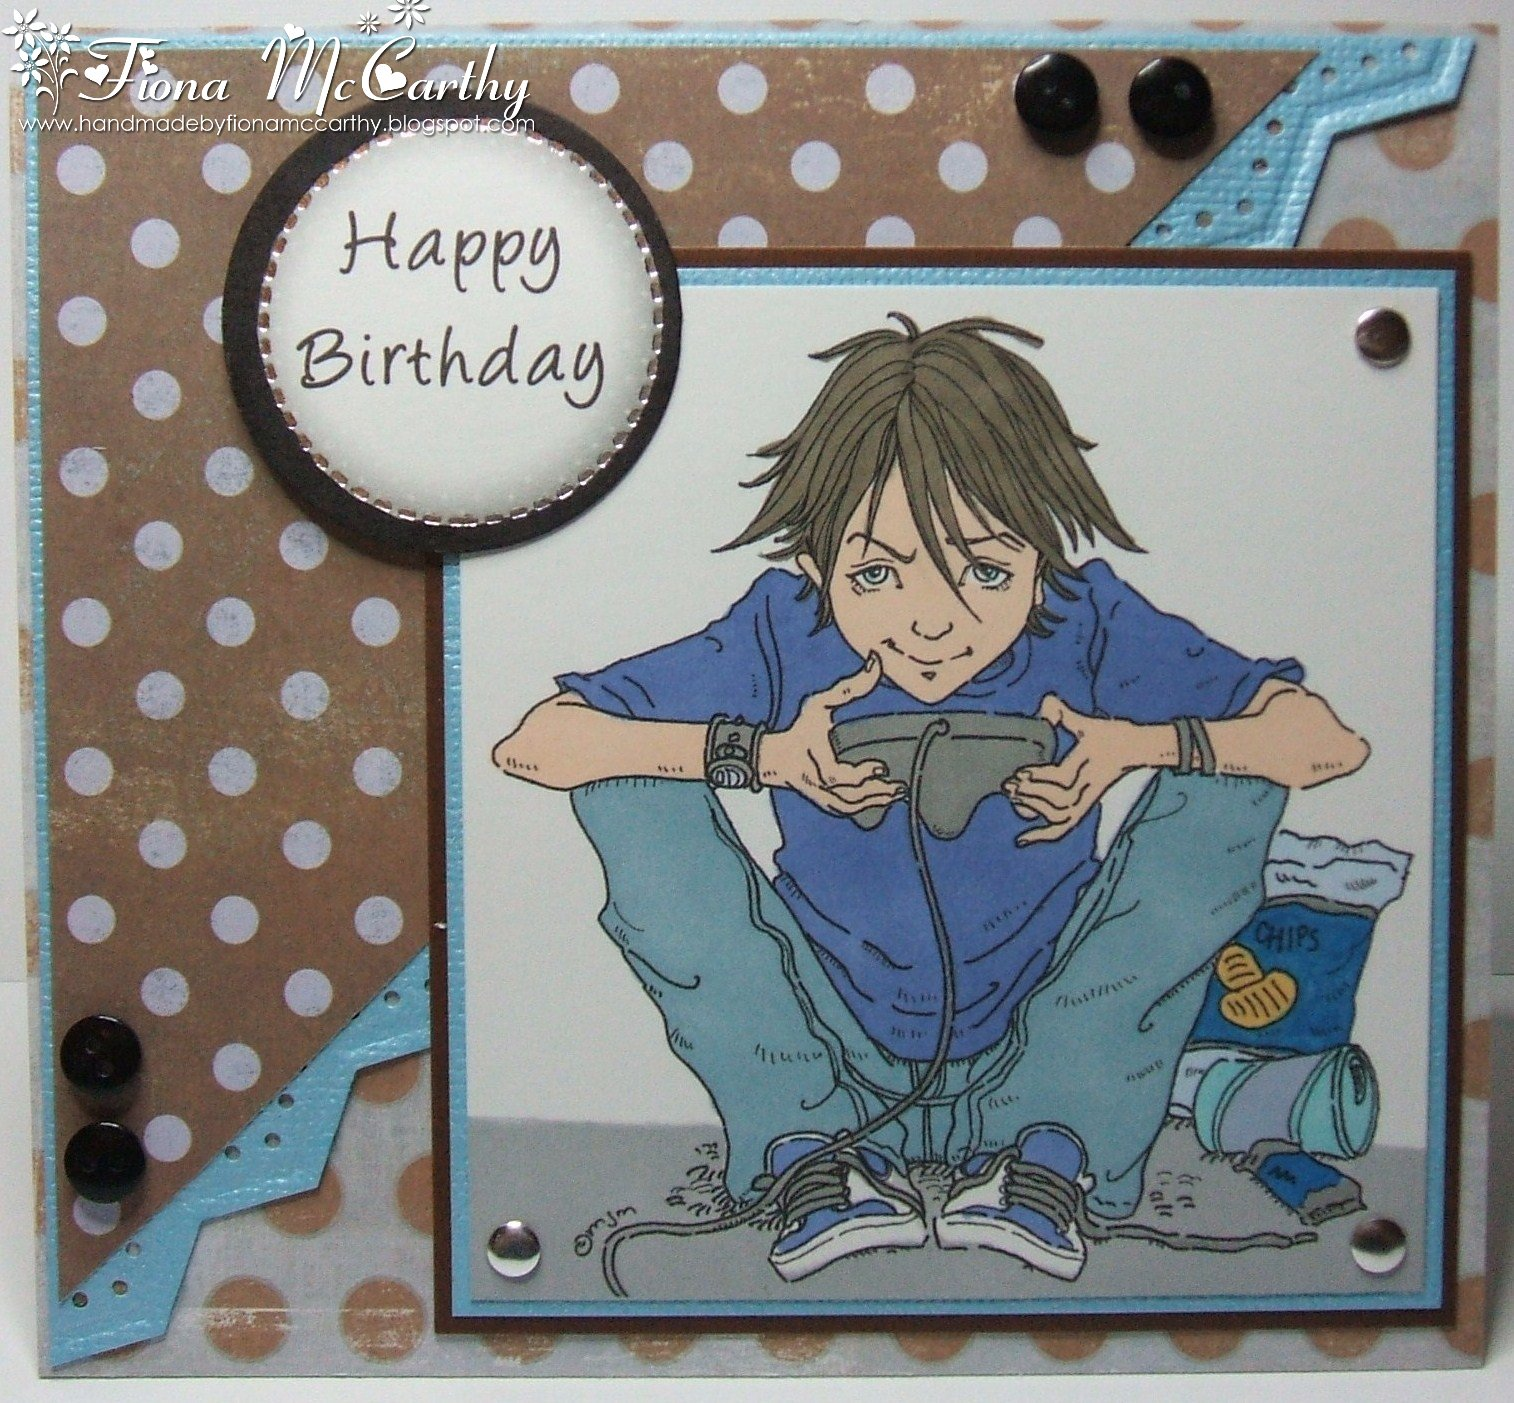 Handmade by fiona mccarthy another male birthday card another male birthday card bookmarktalkfo Gallery